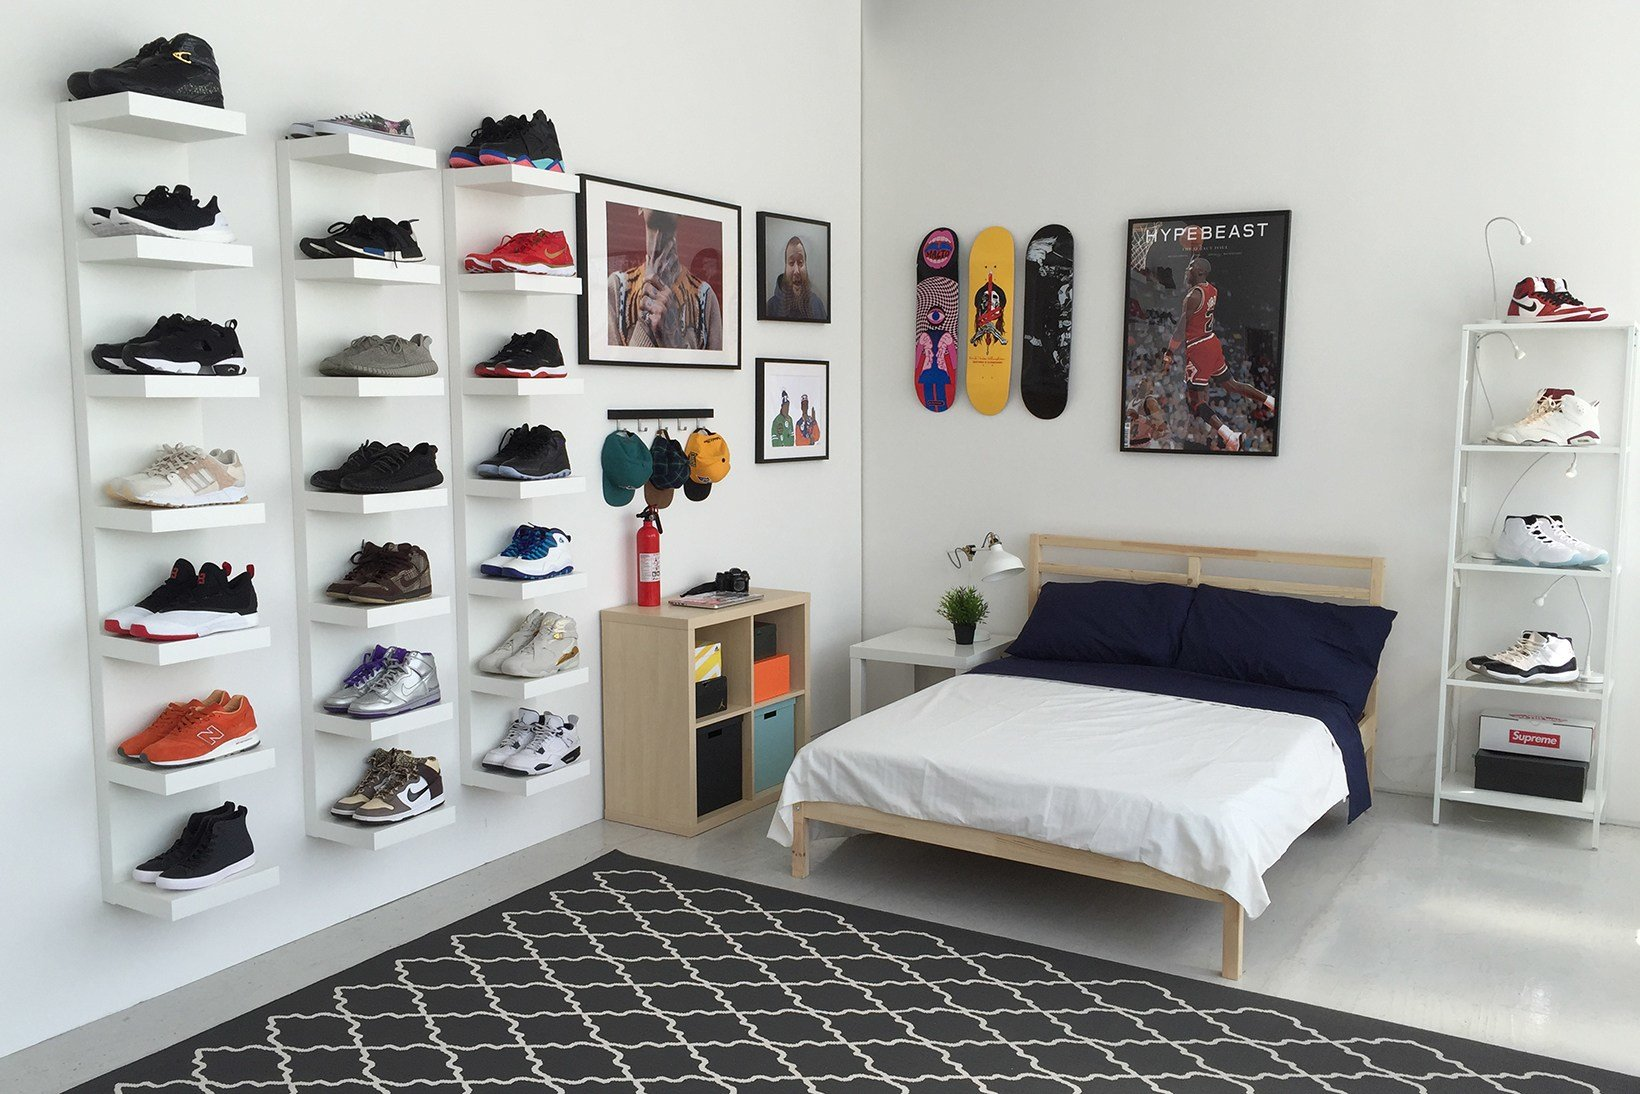 Best Ikea And Hypebeast Design The Ideal Sneakerhead Bedroom Hypebeast With Pictures